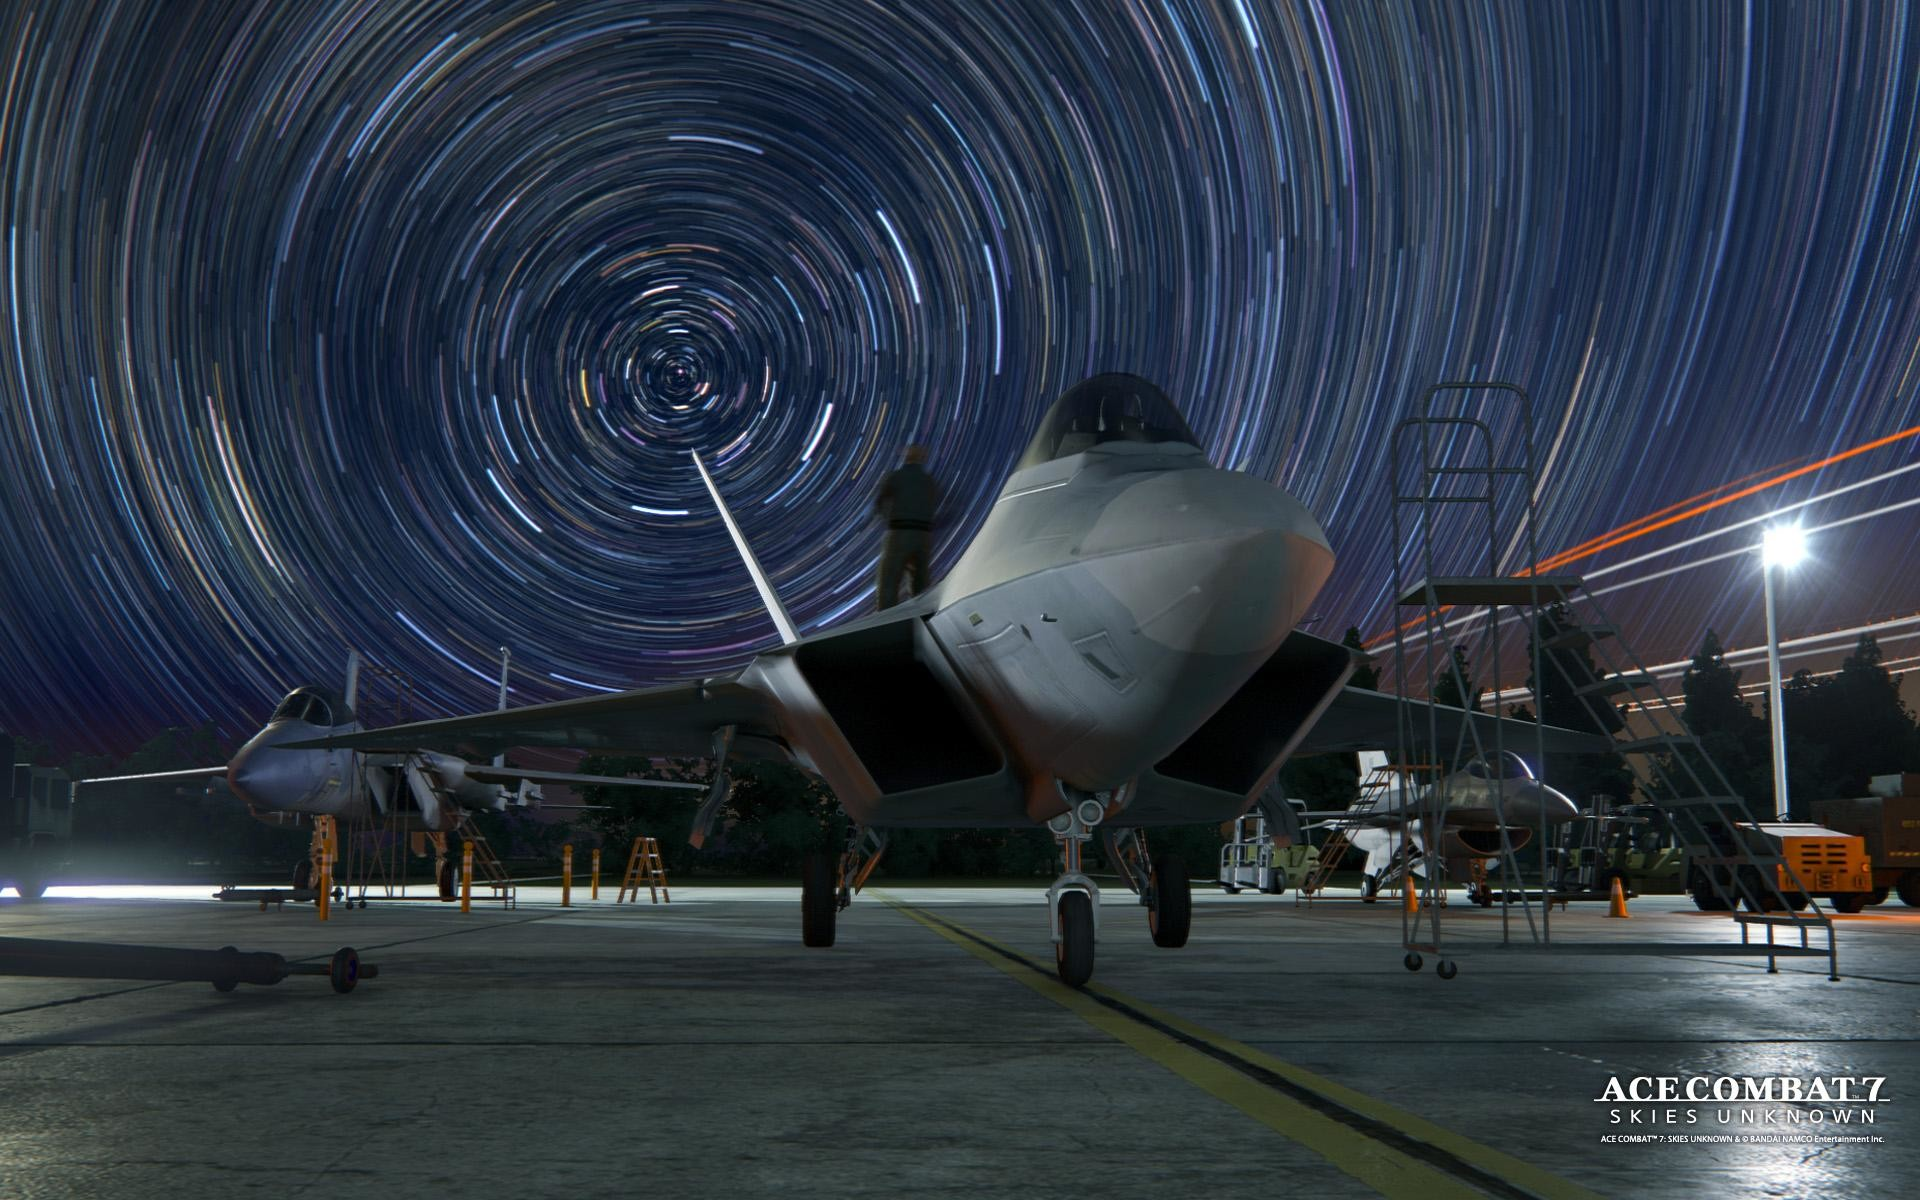 Res: 1920x1200, Ace Combat 7New Christmas Wallpaper ...